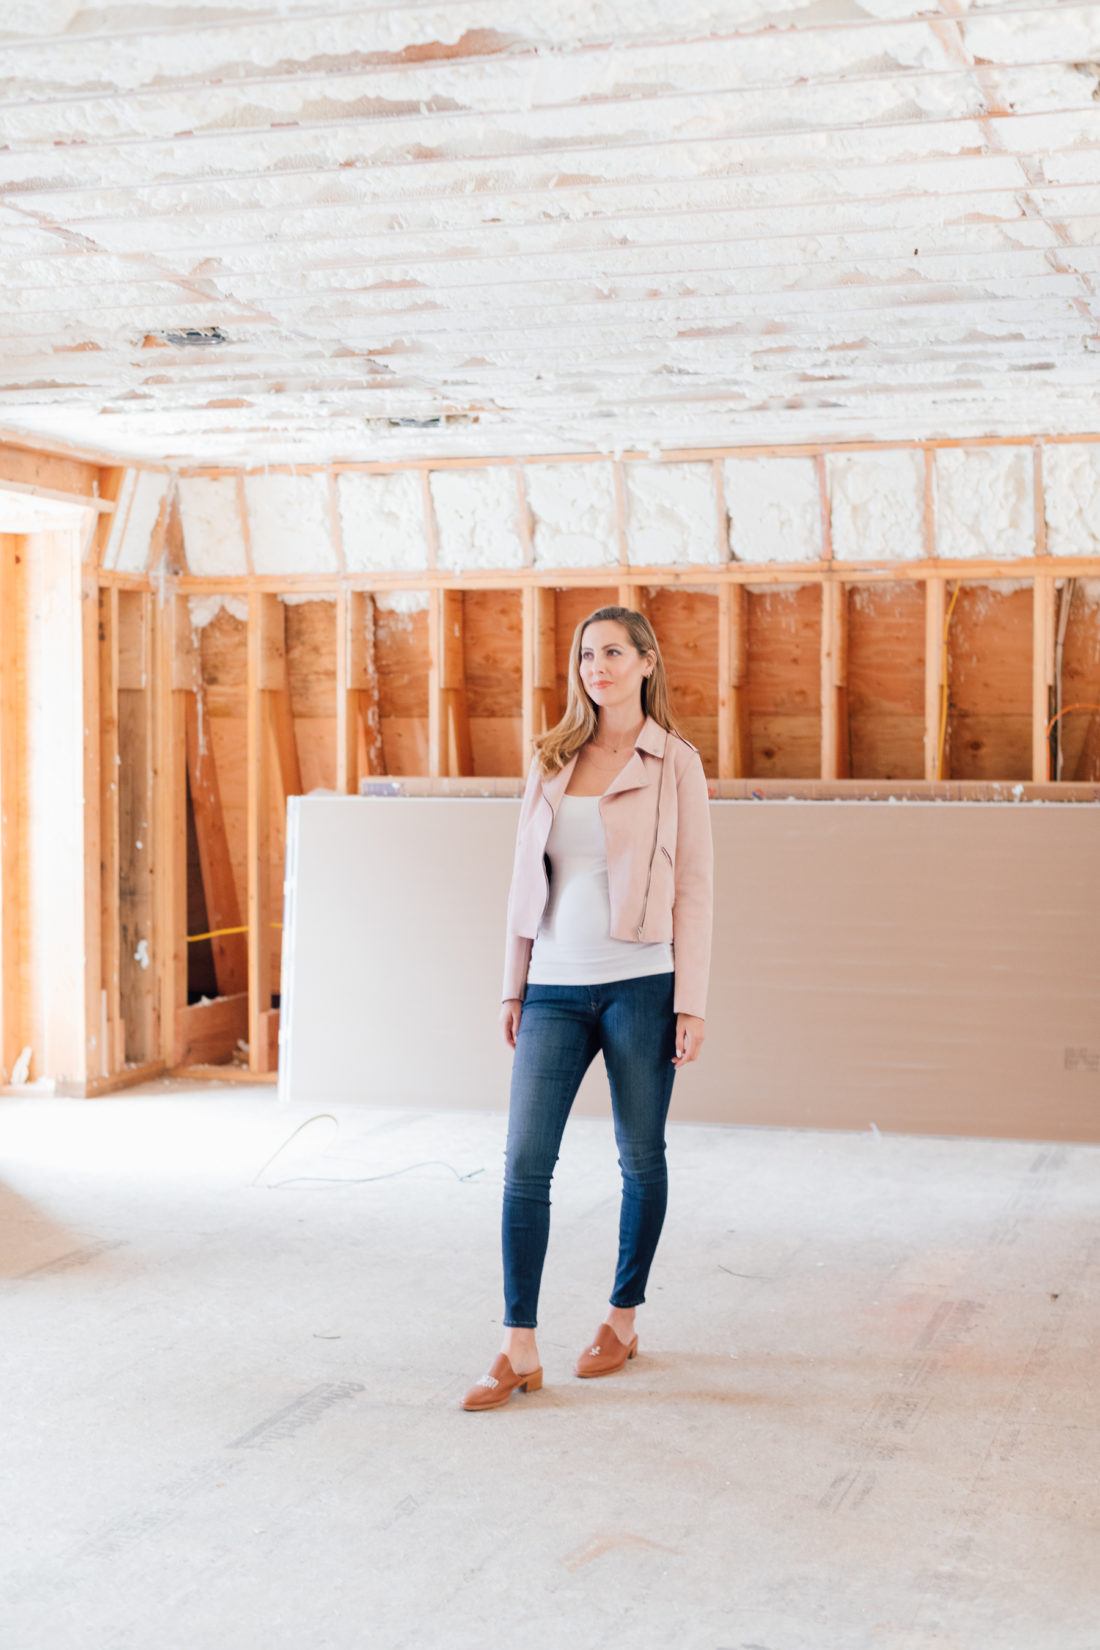 Eva Amurri shares an update on the construction of her home addition